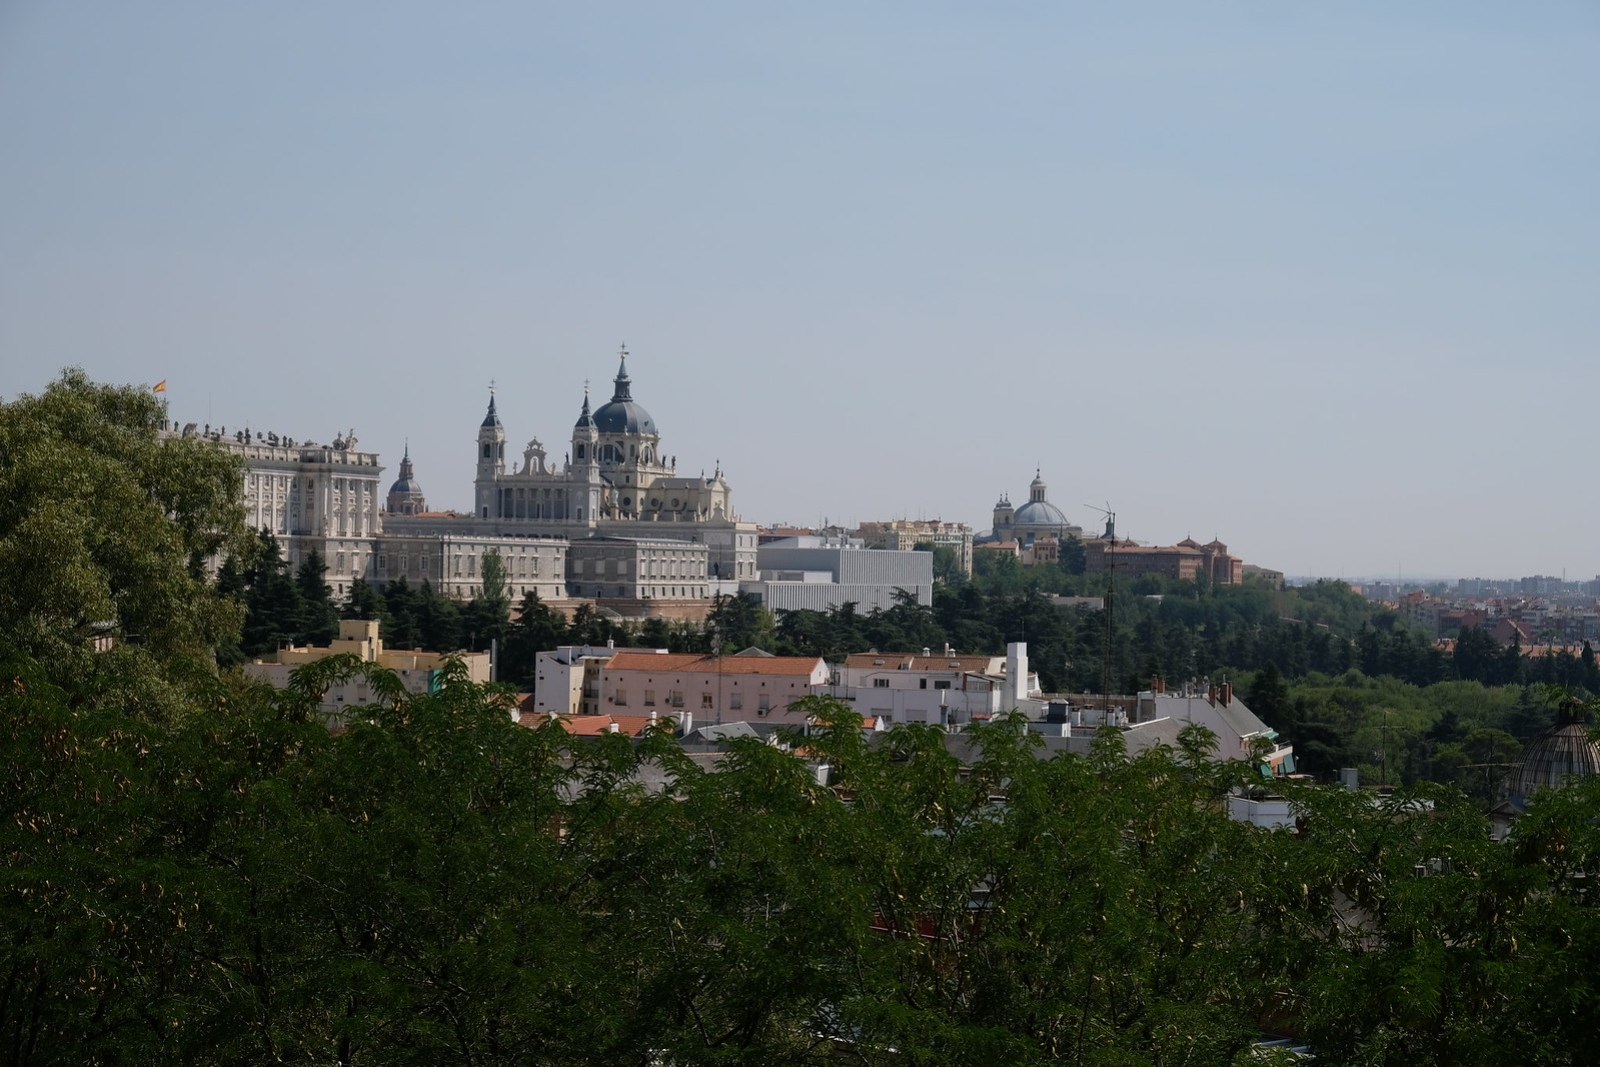 City View from Temple of Debod